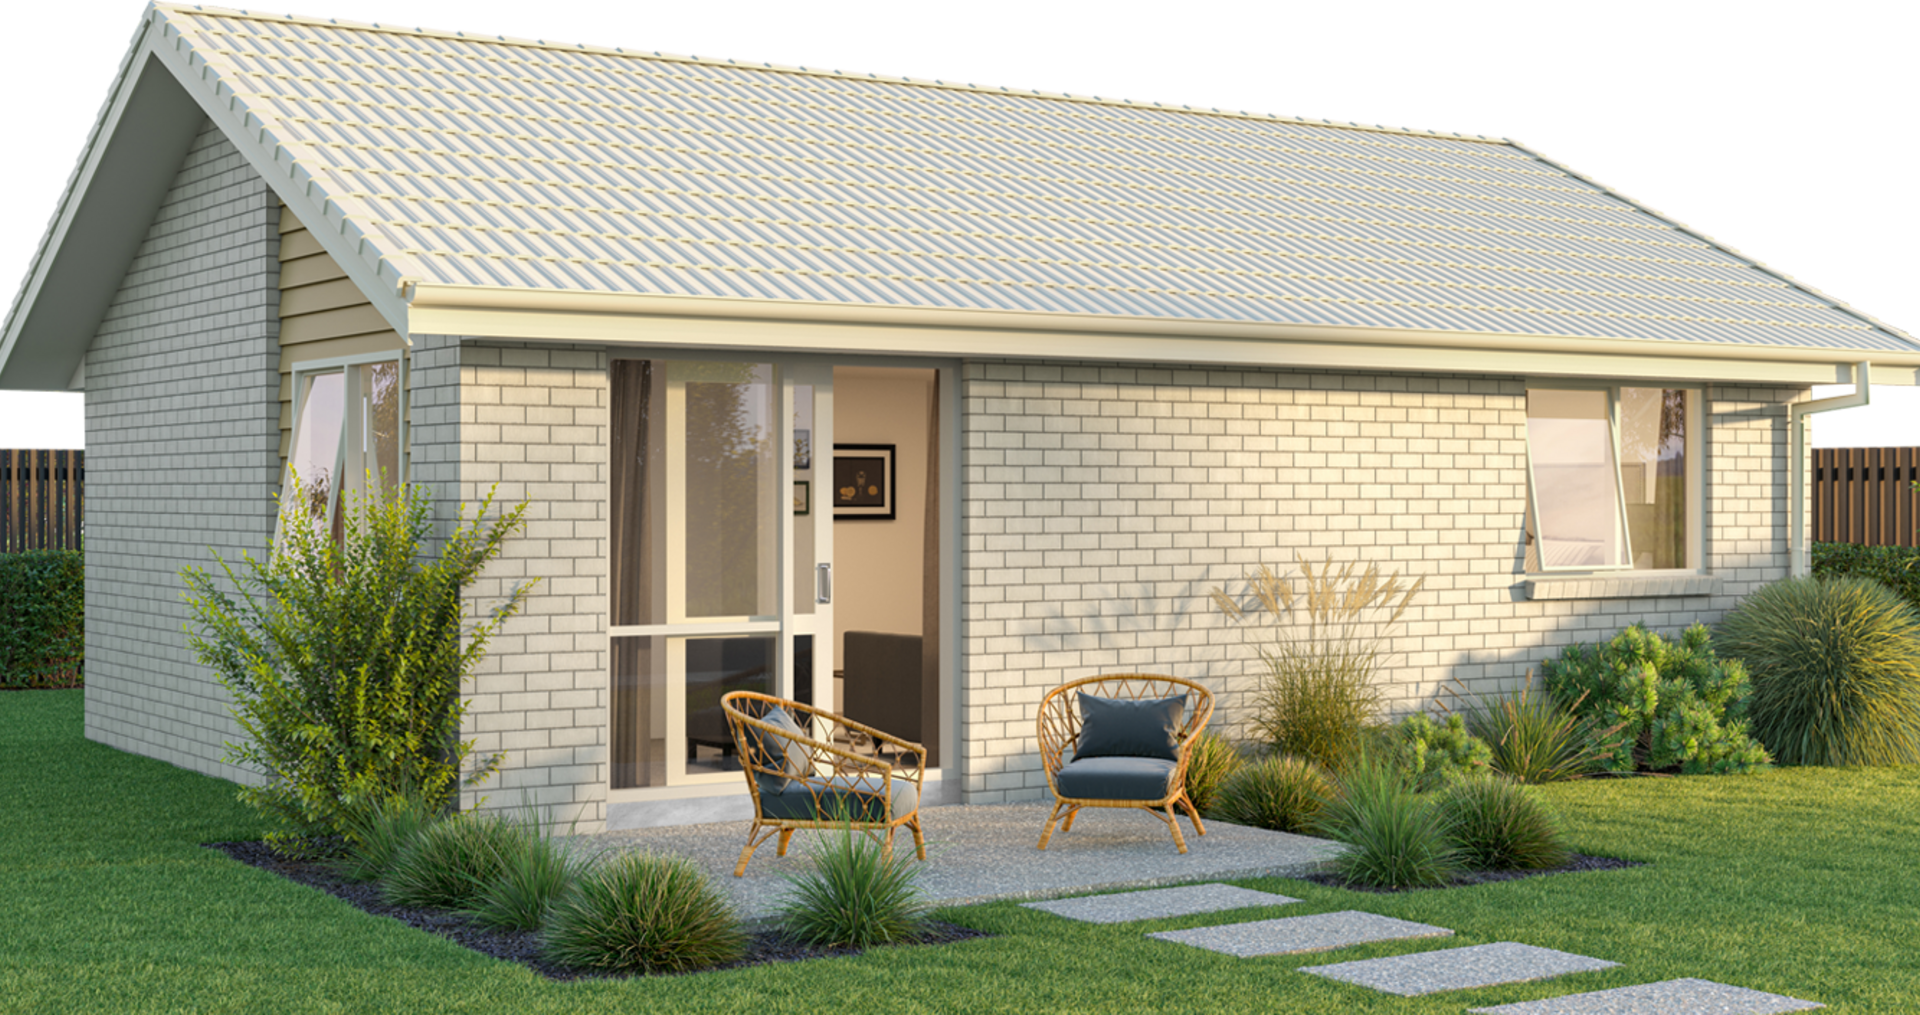 How to add value to your property with a minor dwelling